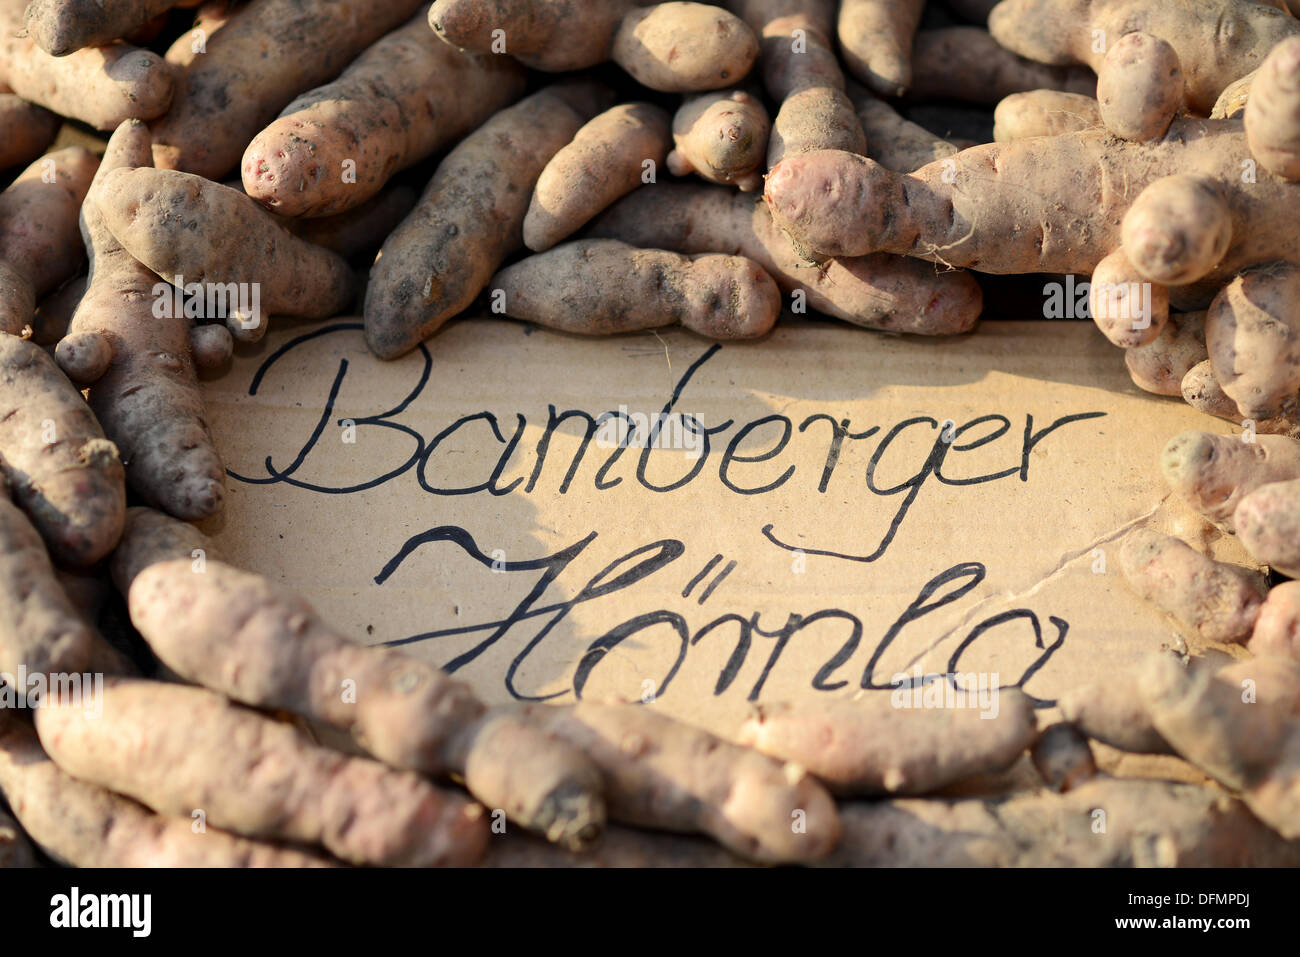 Bamberg, Germany. 07th Oct, 2013. Potatos of the 'Bamberg potato' variety are on sale in Bamberg, Germany, 07 October 2013. The old Franconian potato variety has been admitted to the European registewr of regional specialities. Photo: DAVID EBENER/dpa/Alamy Live News - Stock Image